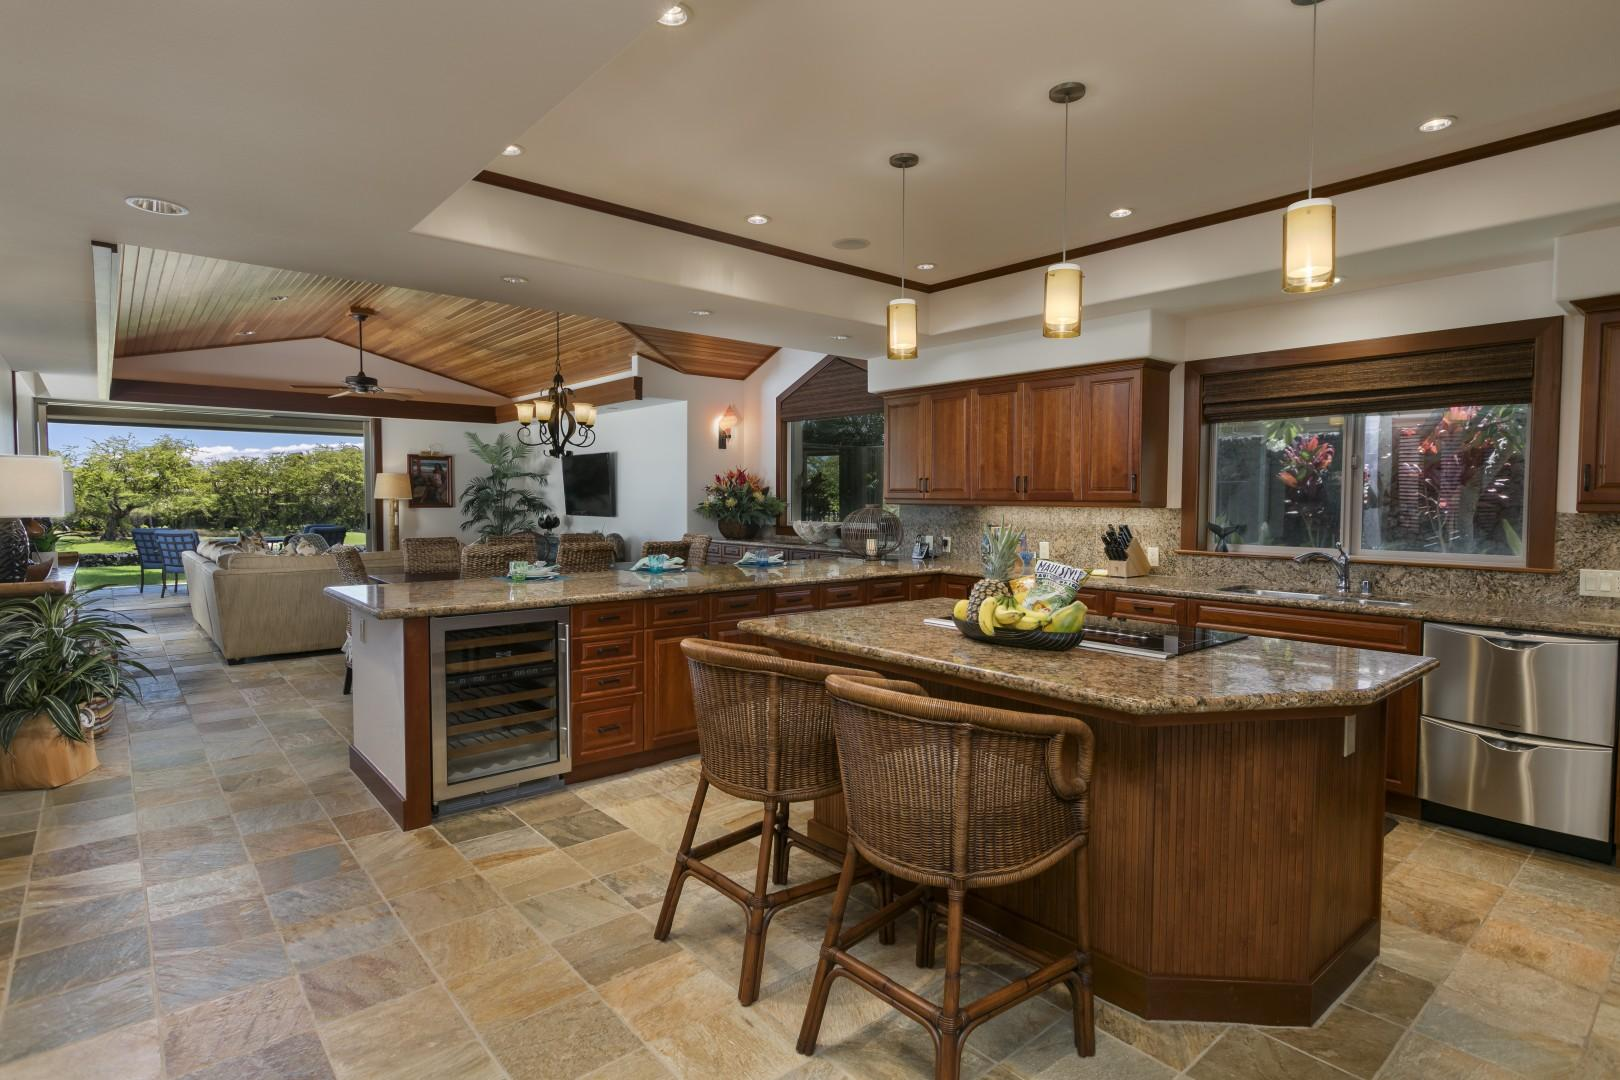 Gourmet Kitchen with everything you need!